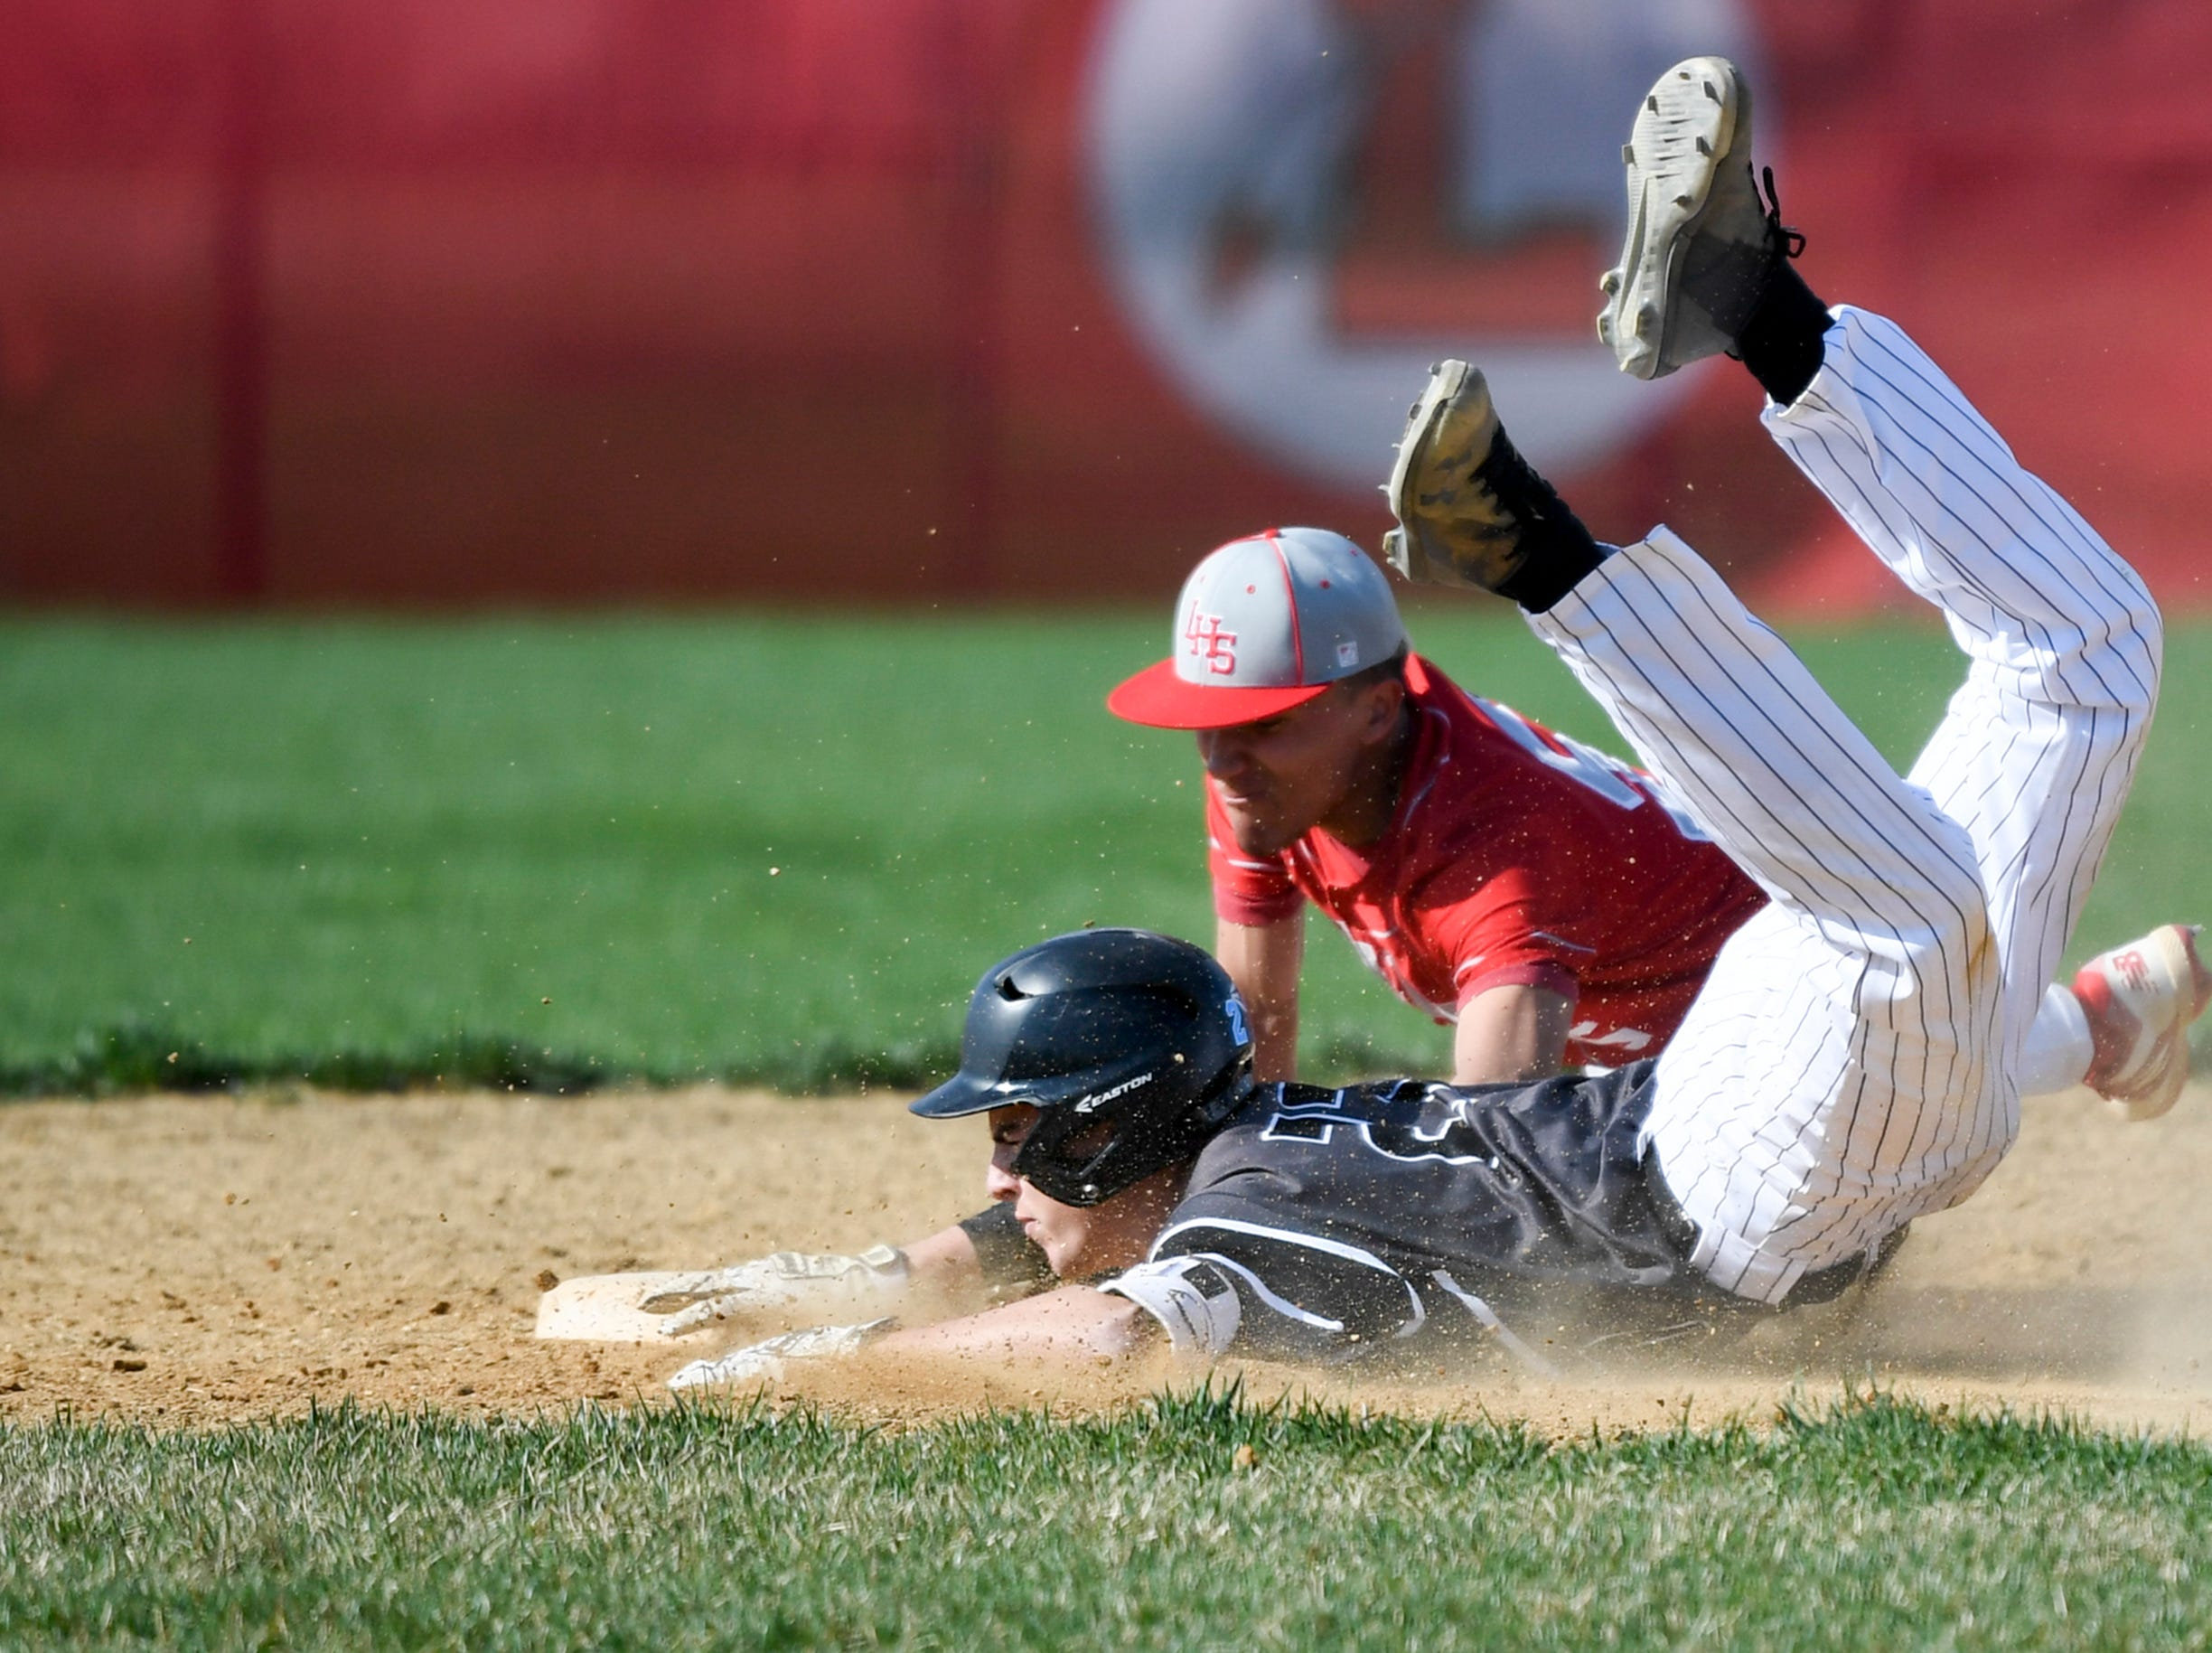 Bishop Eustace's Eric Sabato (27) slides safe into second against Lenape Tuesday, April 16, 2019 in Medford, N.J. Bishop Eustace won 5-3 and head coach Sam Tropiano earned his record-setting 673rd win.